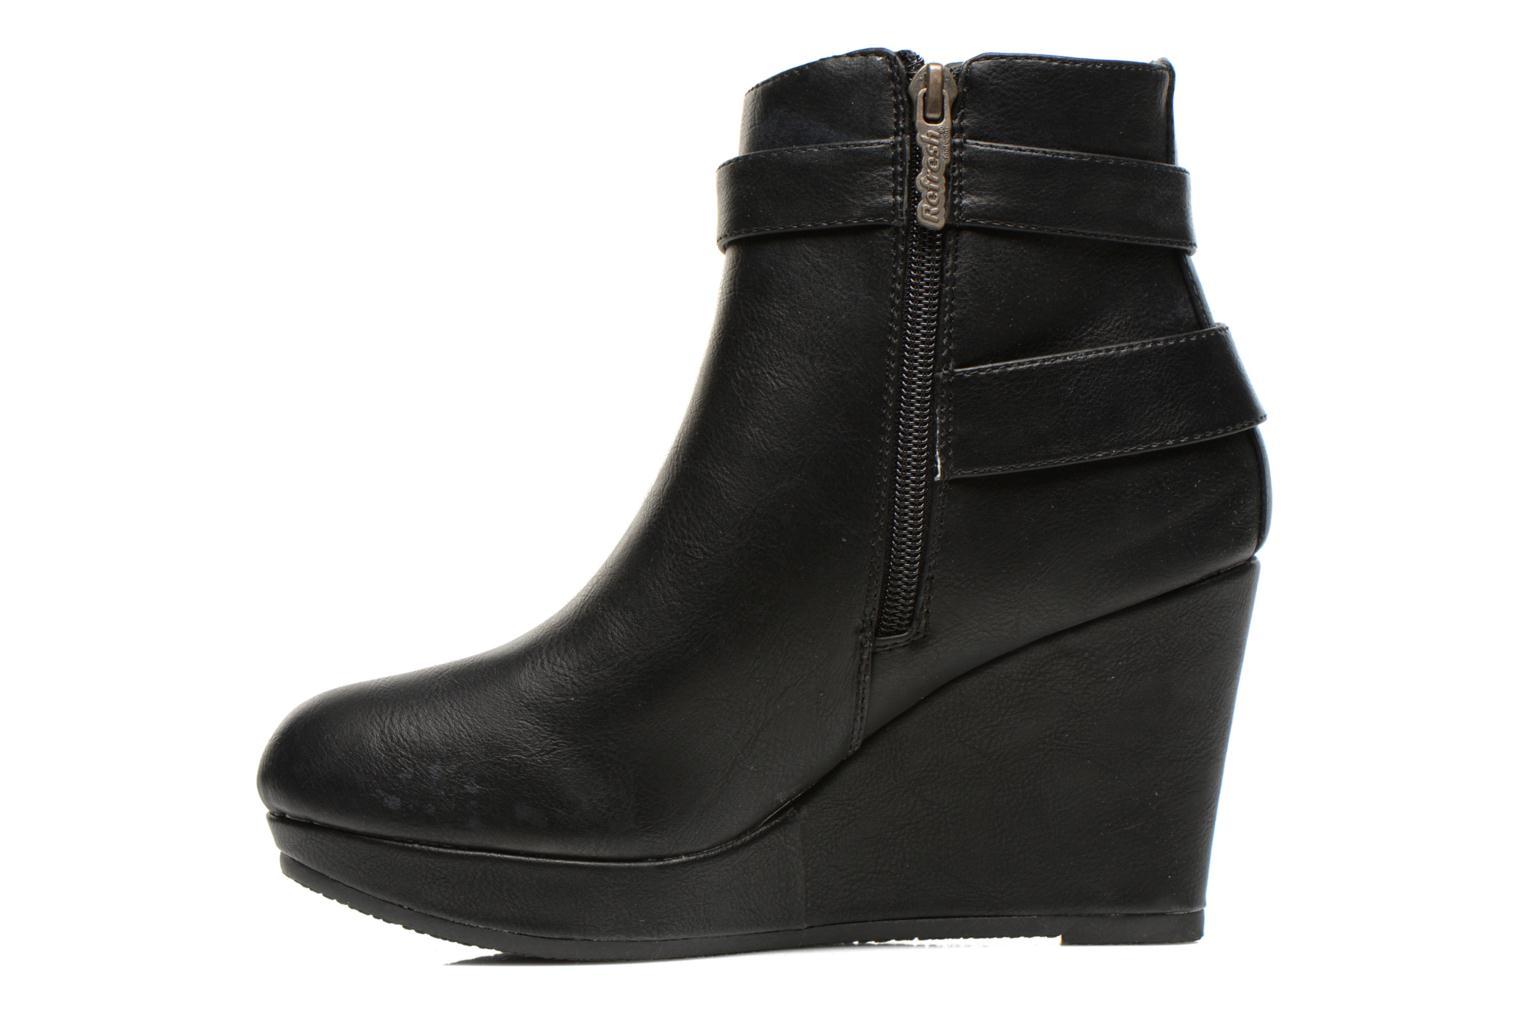 Bottines et boots Refresh Elfy-61110 Noir vue face